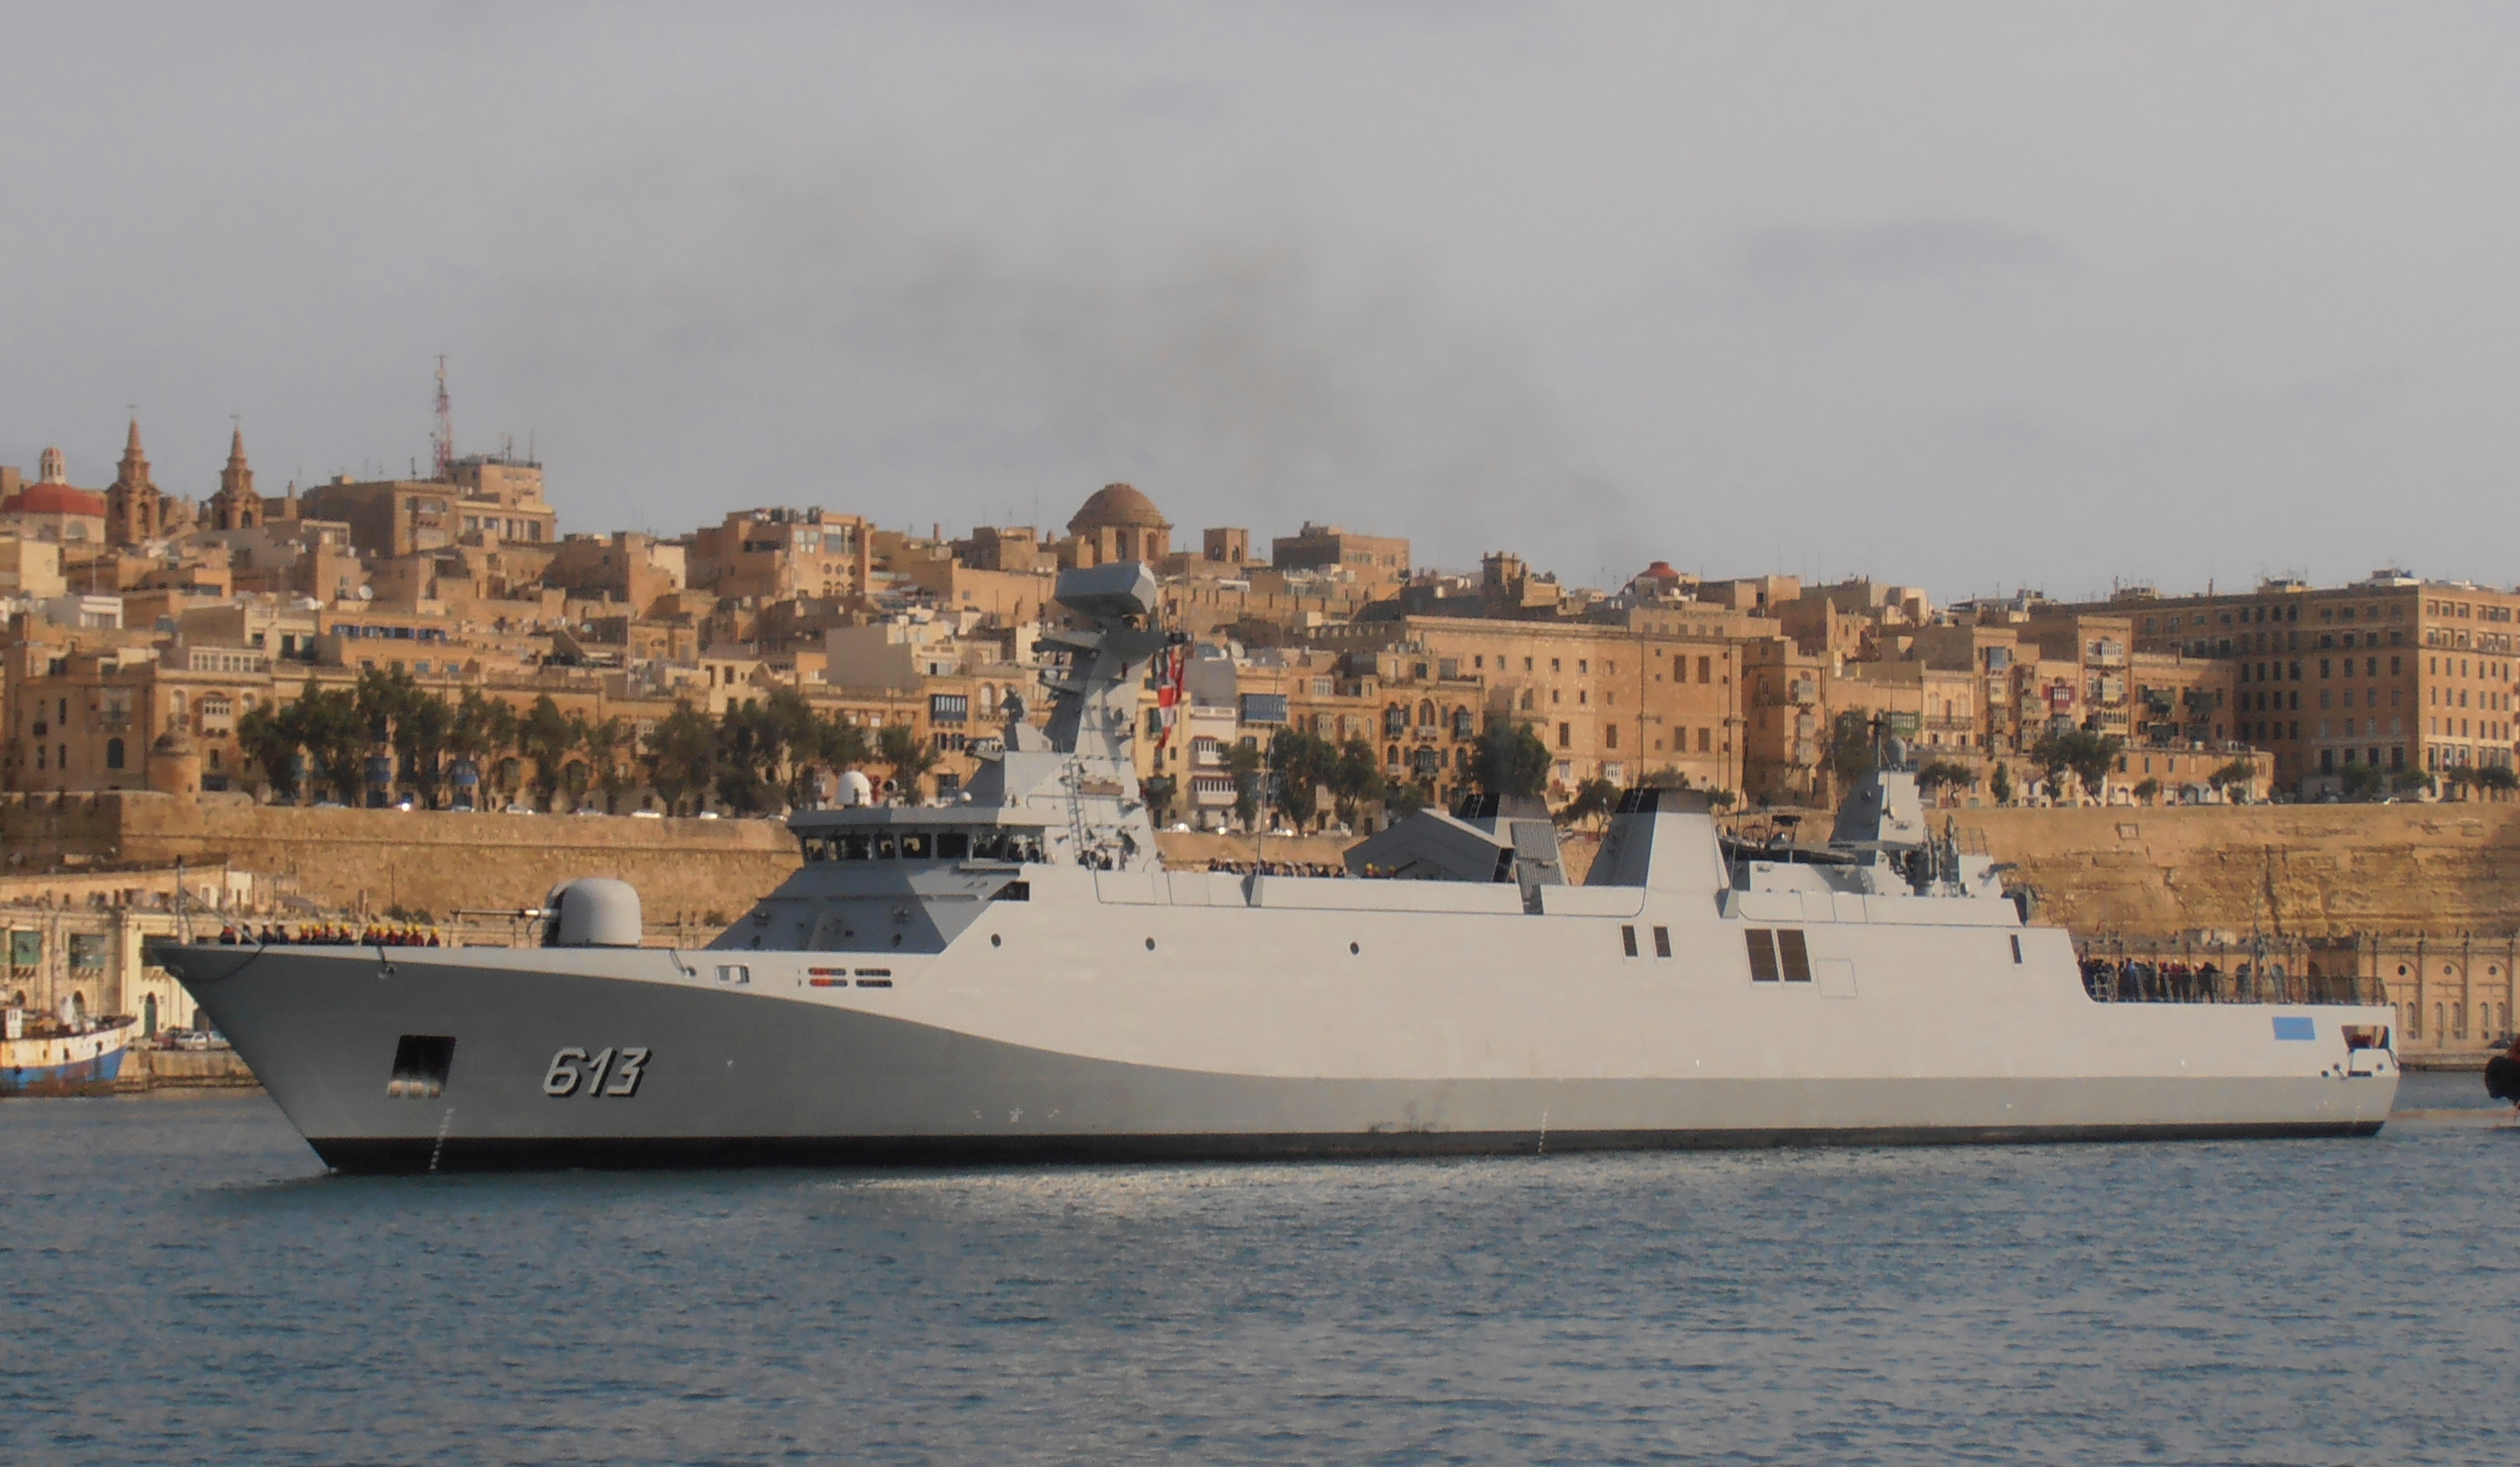 Royal Moroccan Navy Sigma class frigates / Frégates marocaines multimissions Sigma - Page 20 2230491